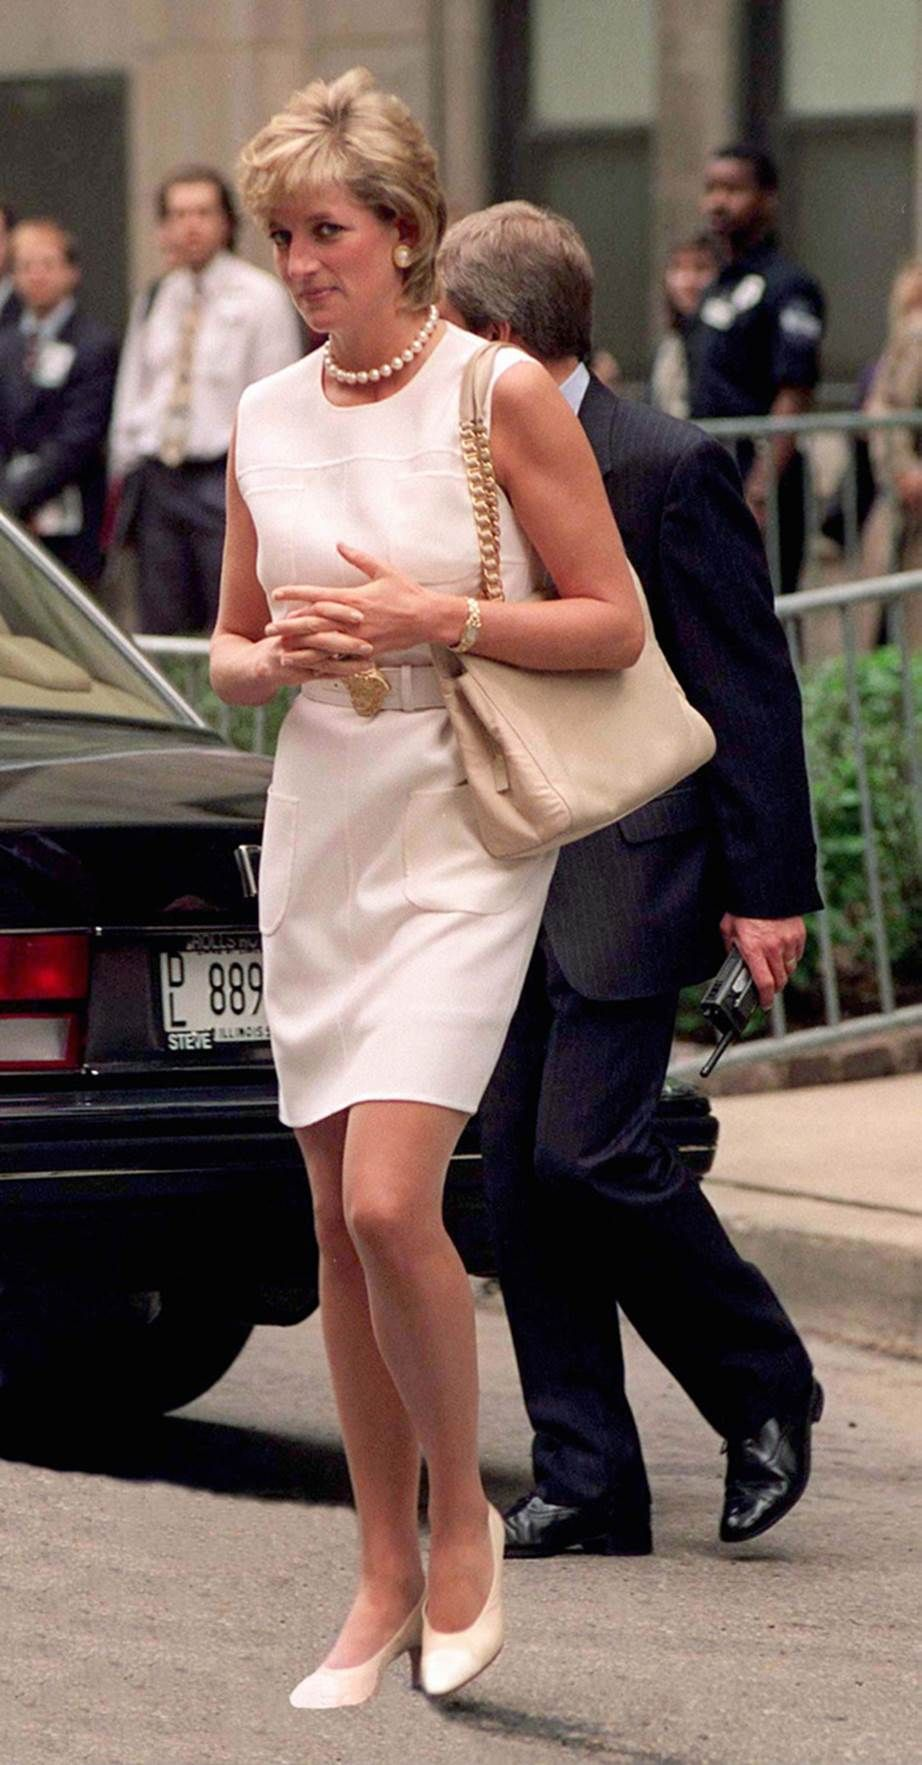 Why did Princess Diana and Prince Charles get divorced?